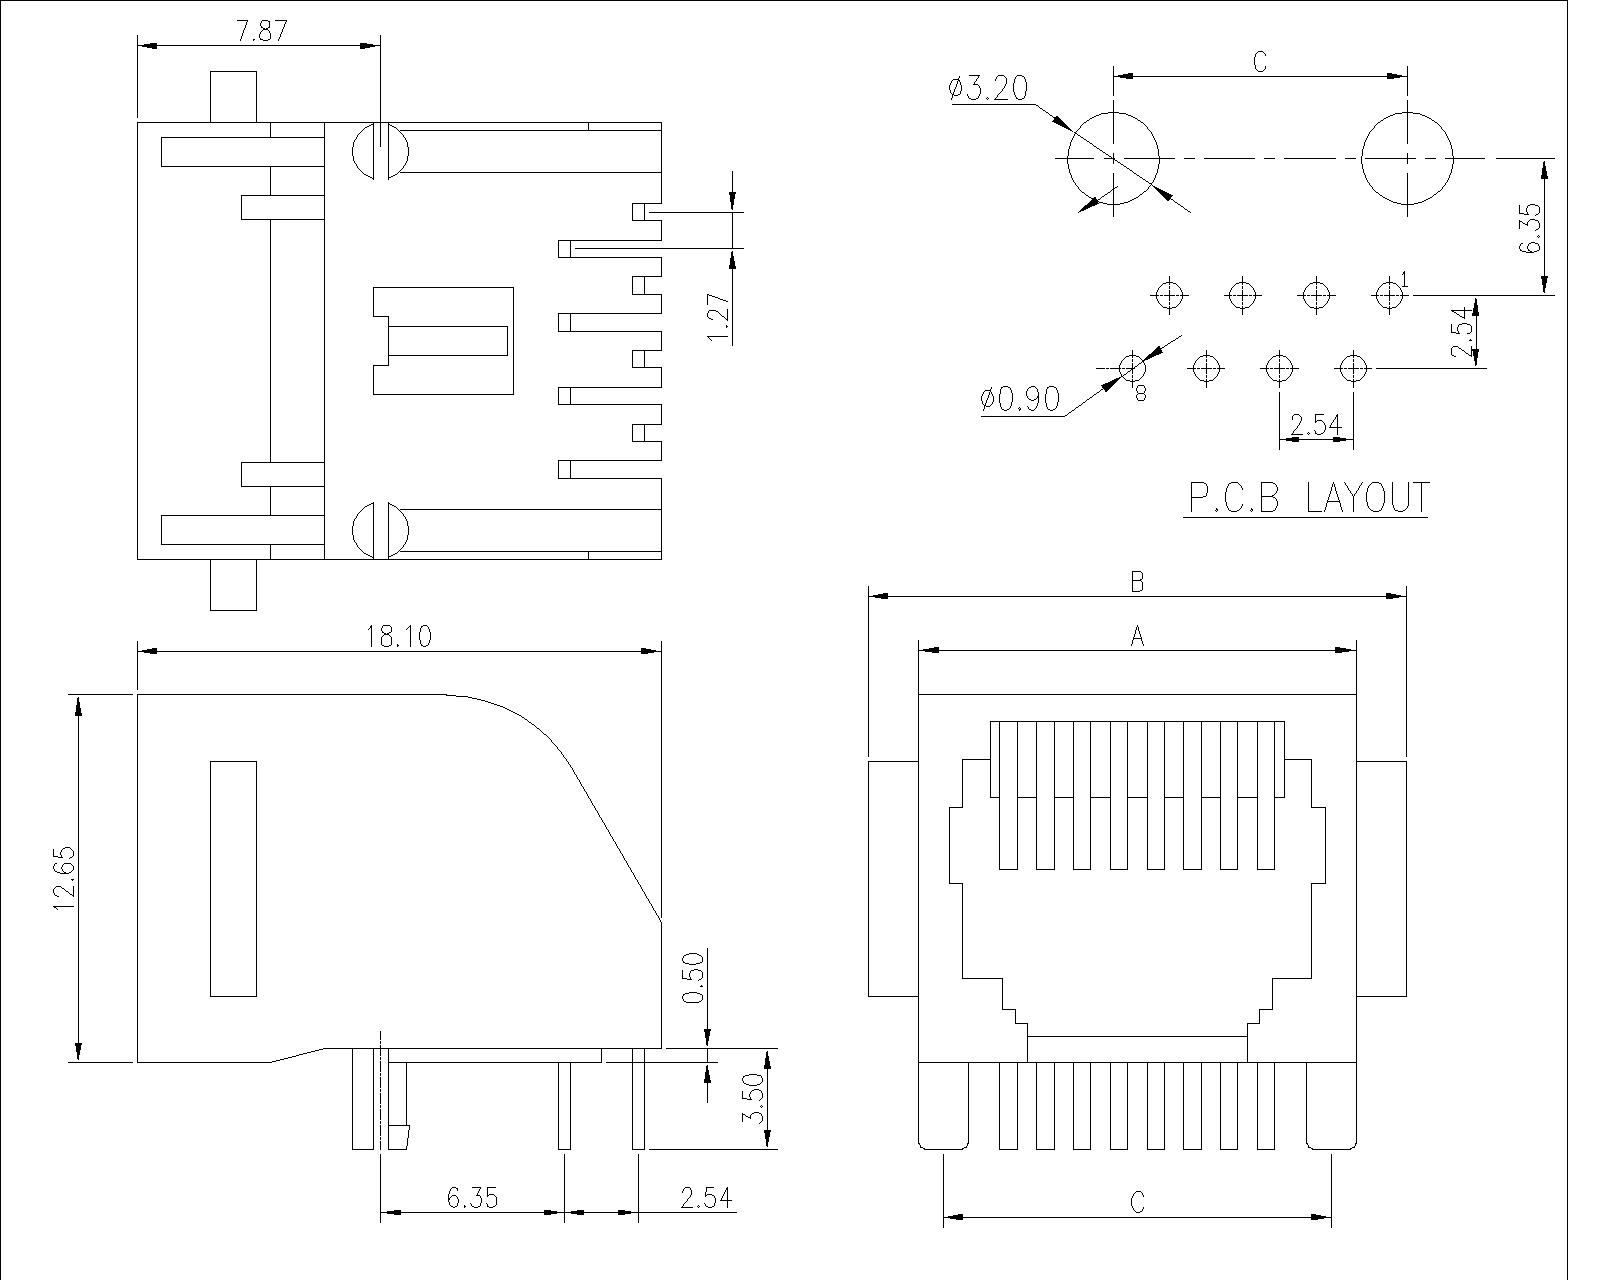 rj45 modular jack wiring diagram volvo diagrams s60 side entry low profile with flange